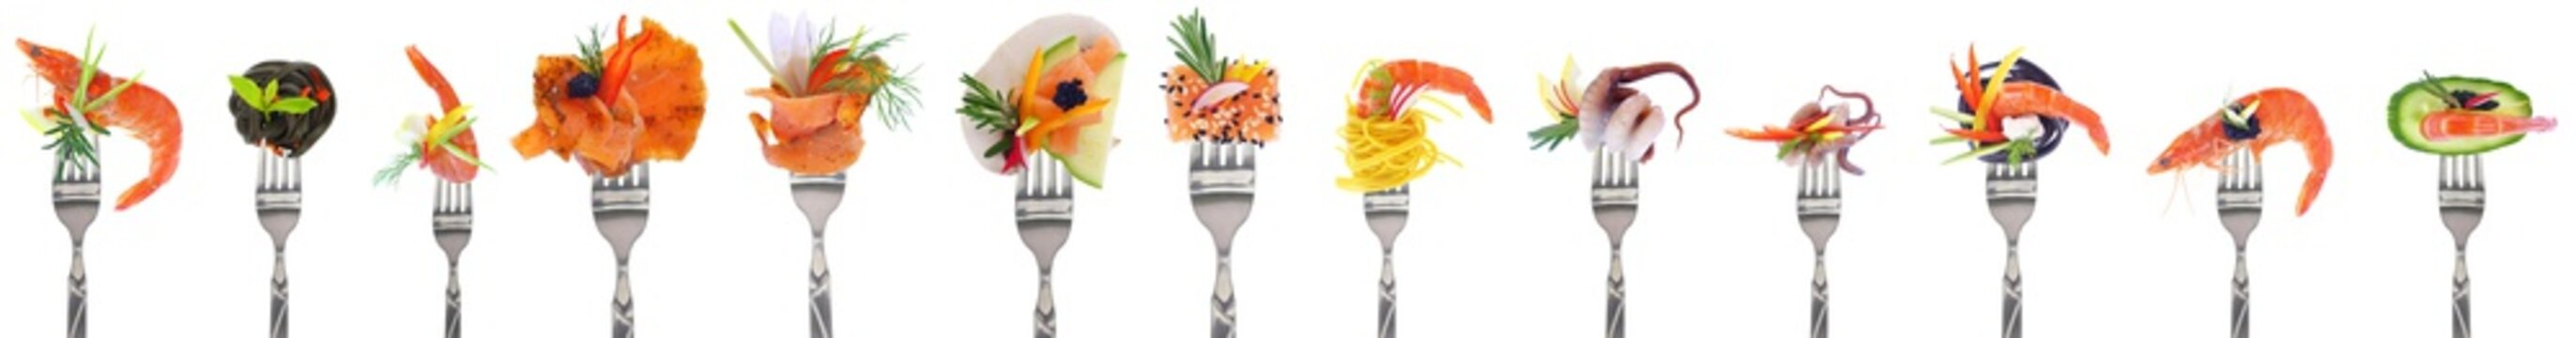 Variety of seafood starters - white background